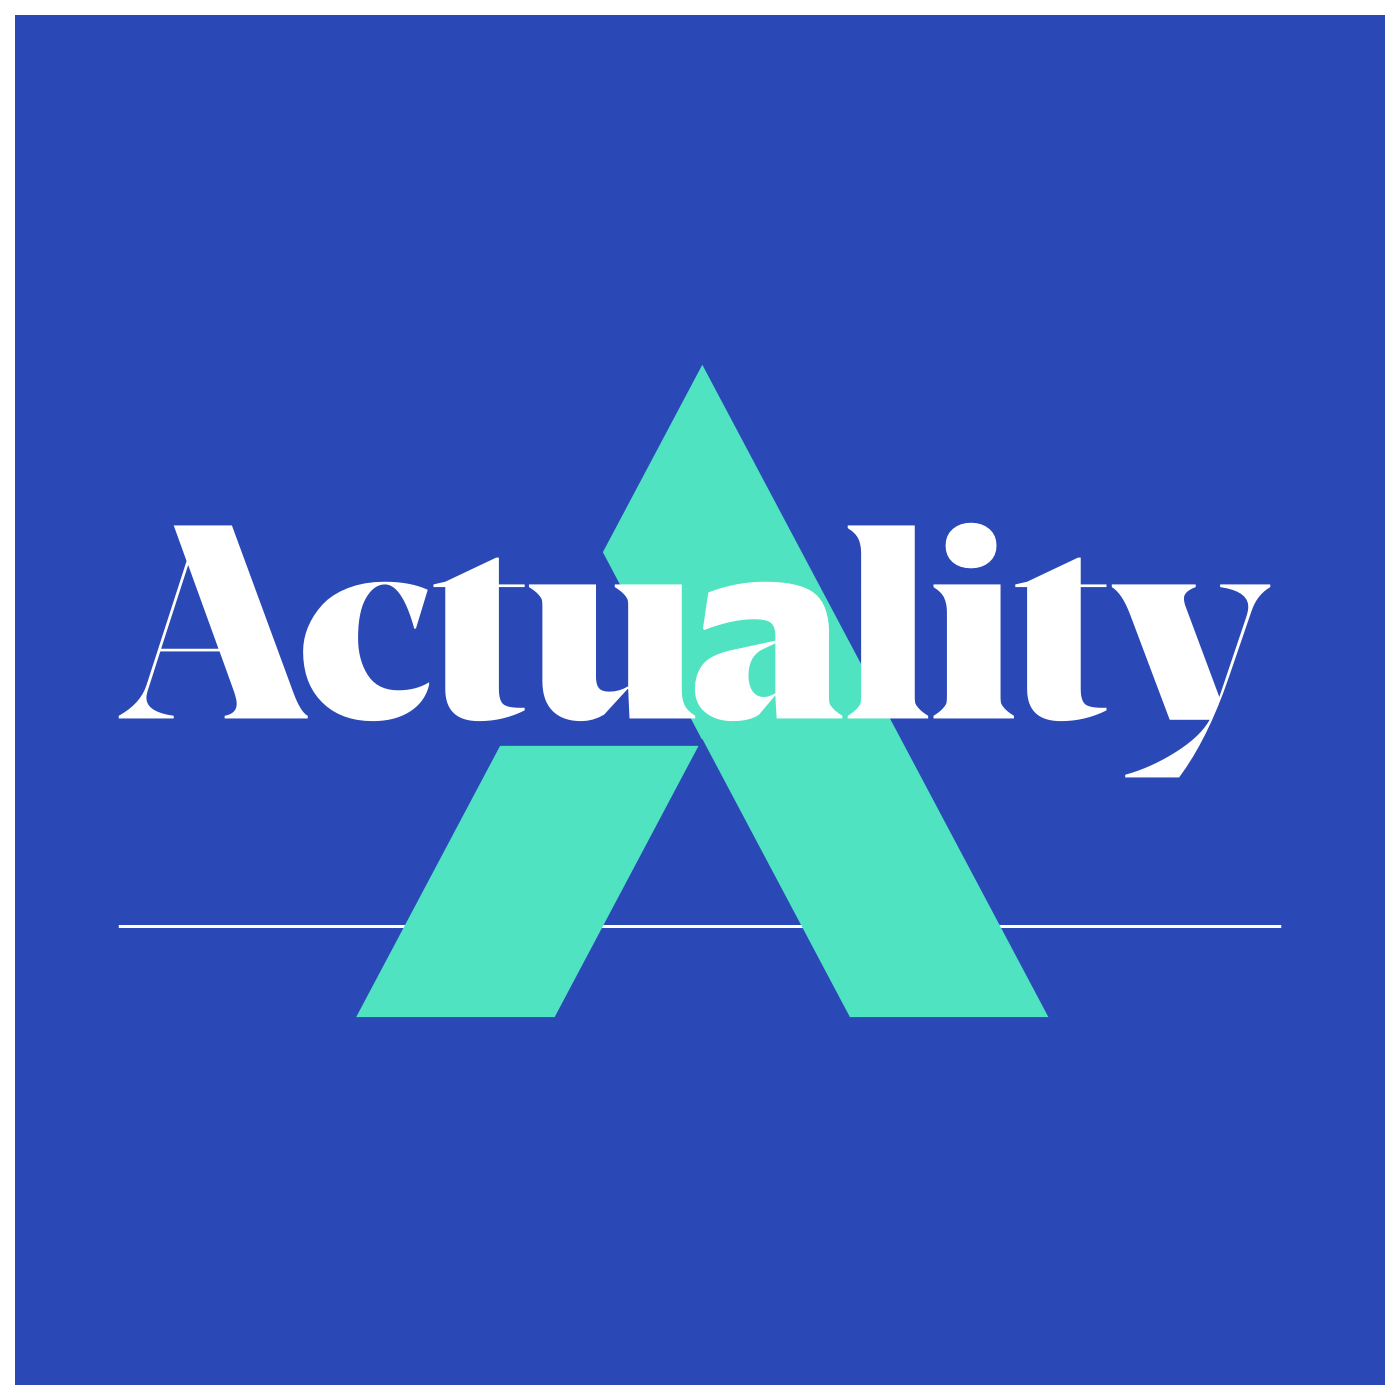 Actuality podcast logo